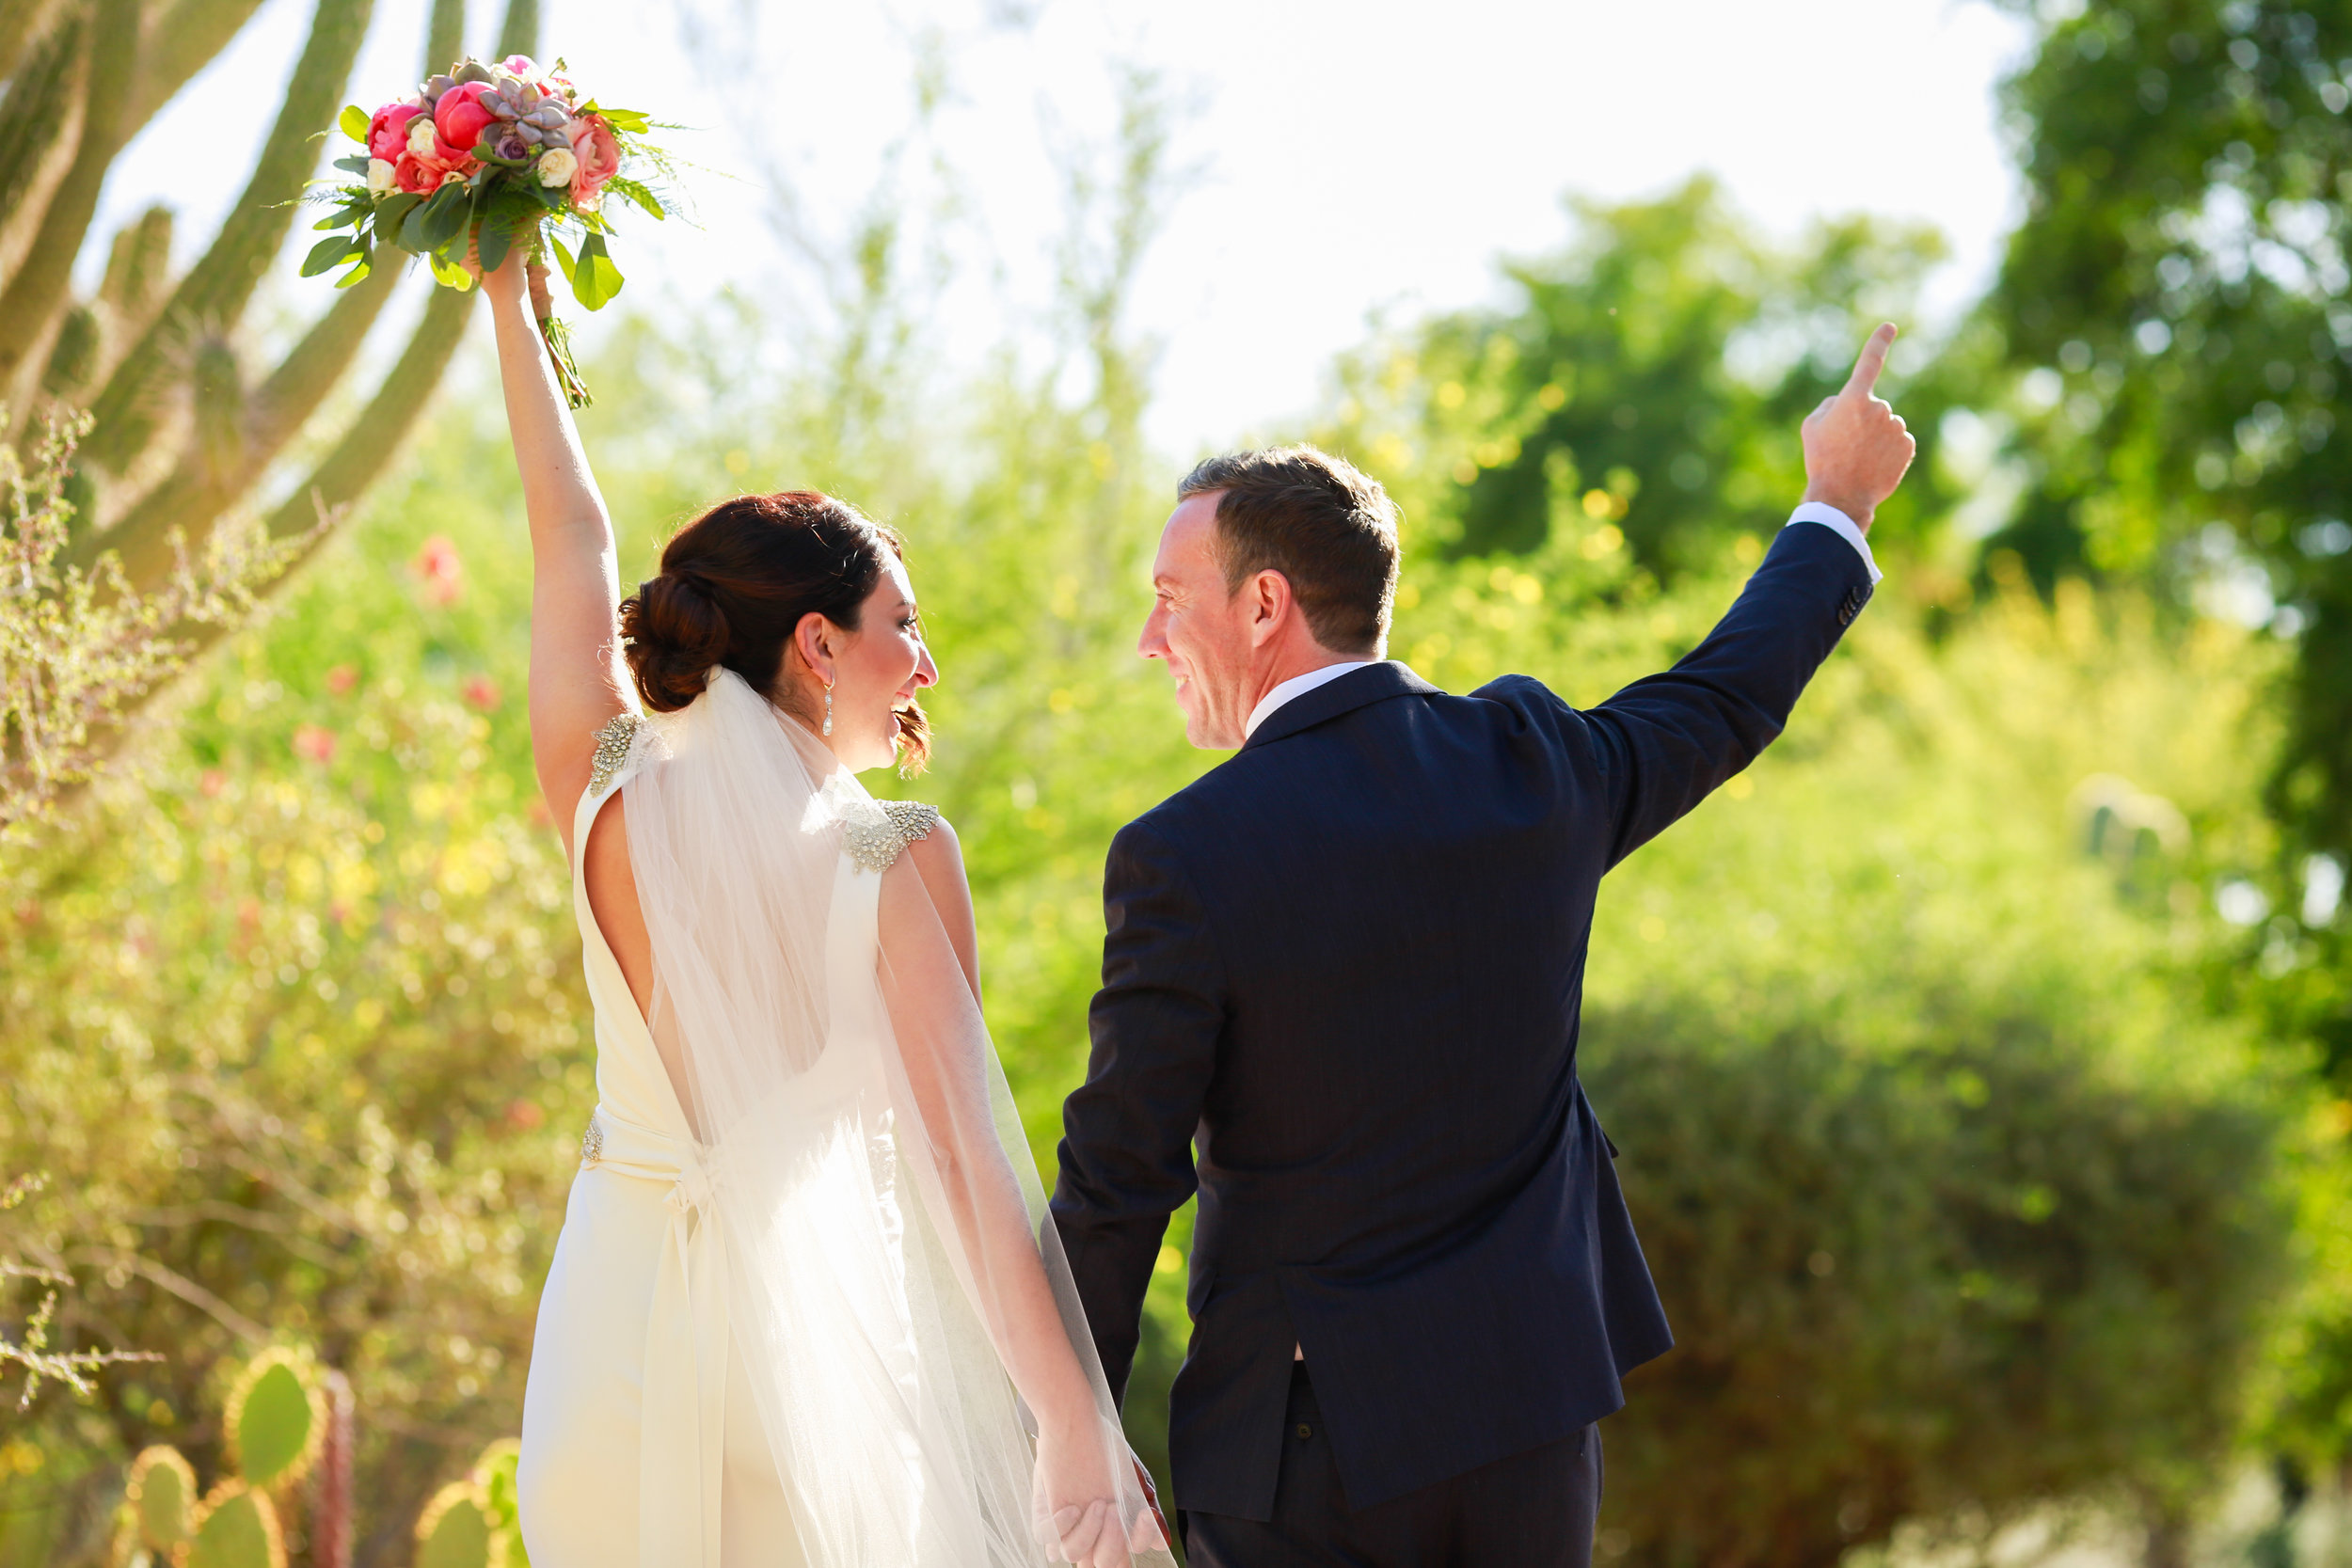 19 bride and groom leaving the ceremony bride and groom photos bride and groom candid photos Mod Wed Photography Life Design Events.jpg